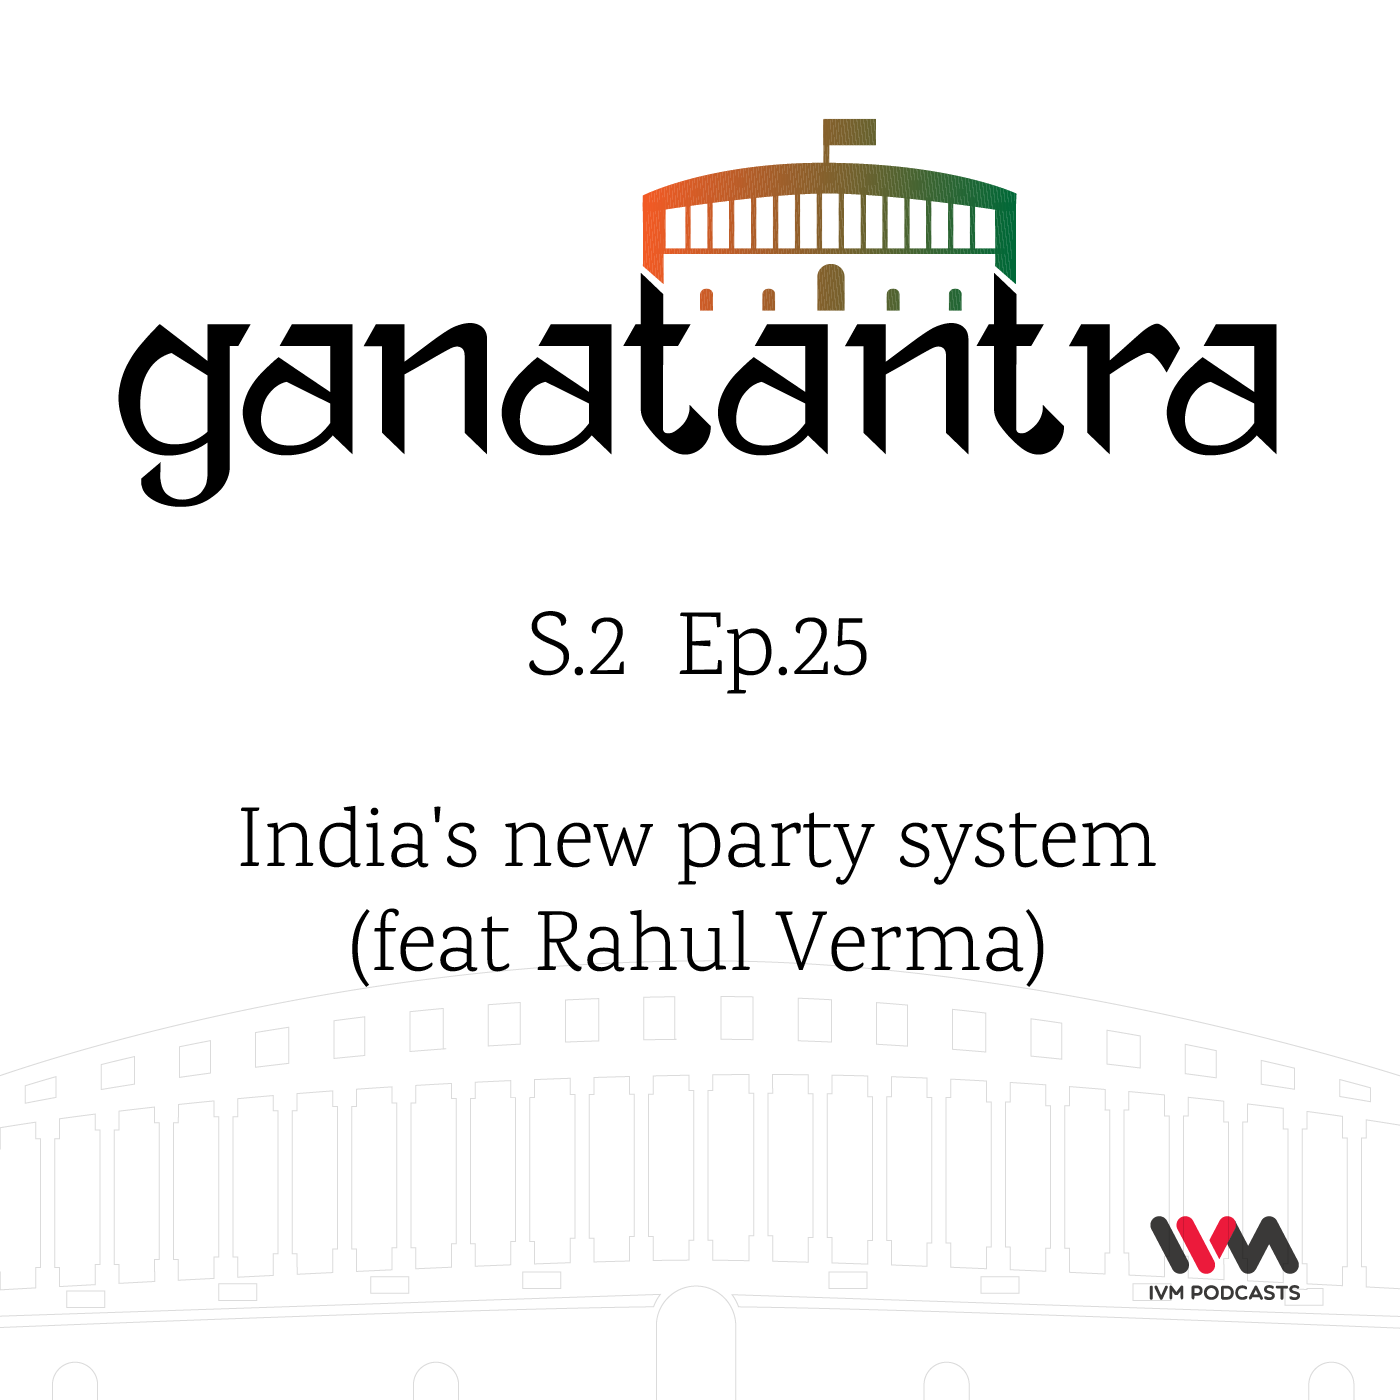 S02 E25: India's new party system (feat Rahul Verma)